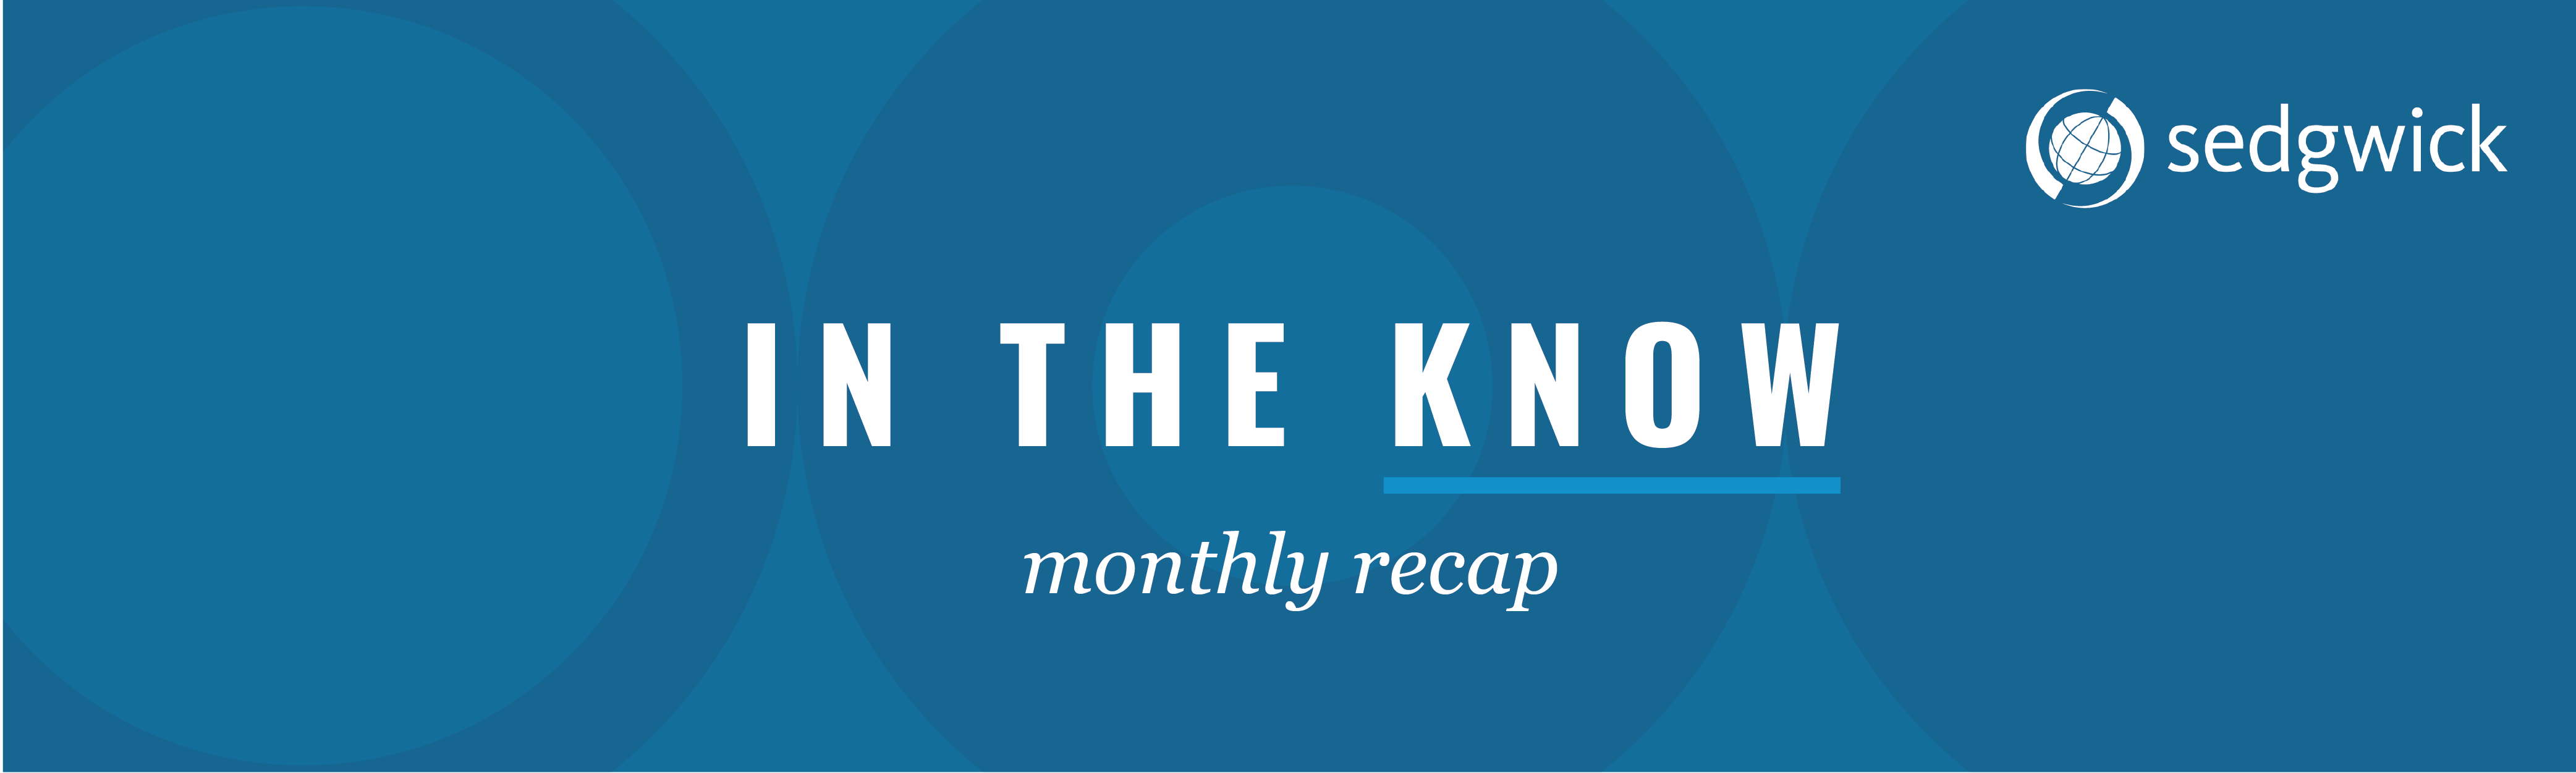 In the know monthly recap